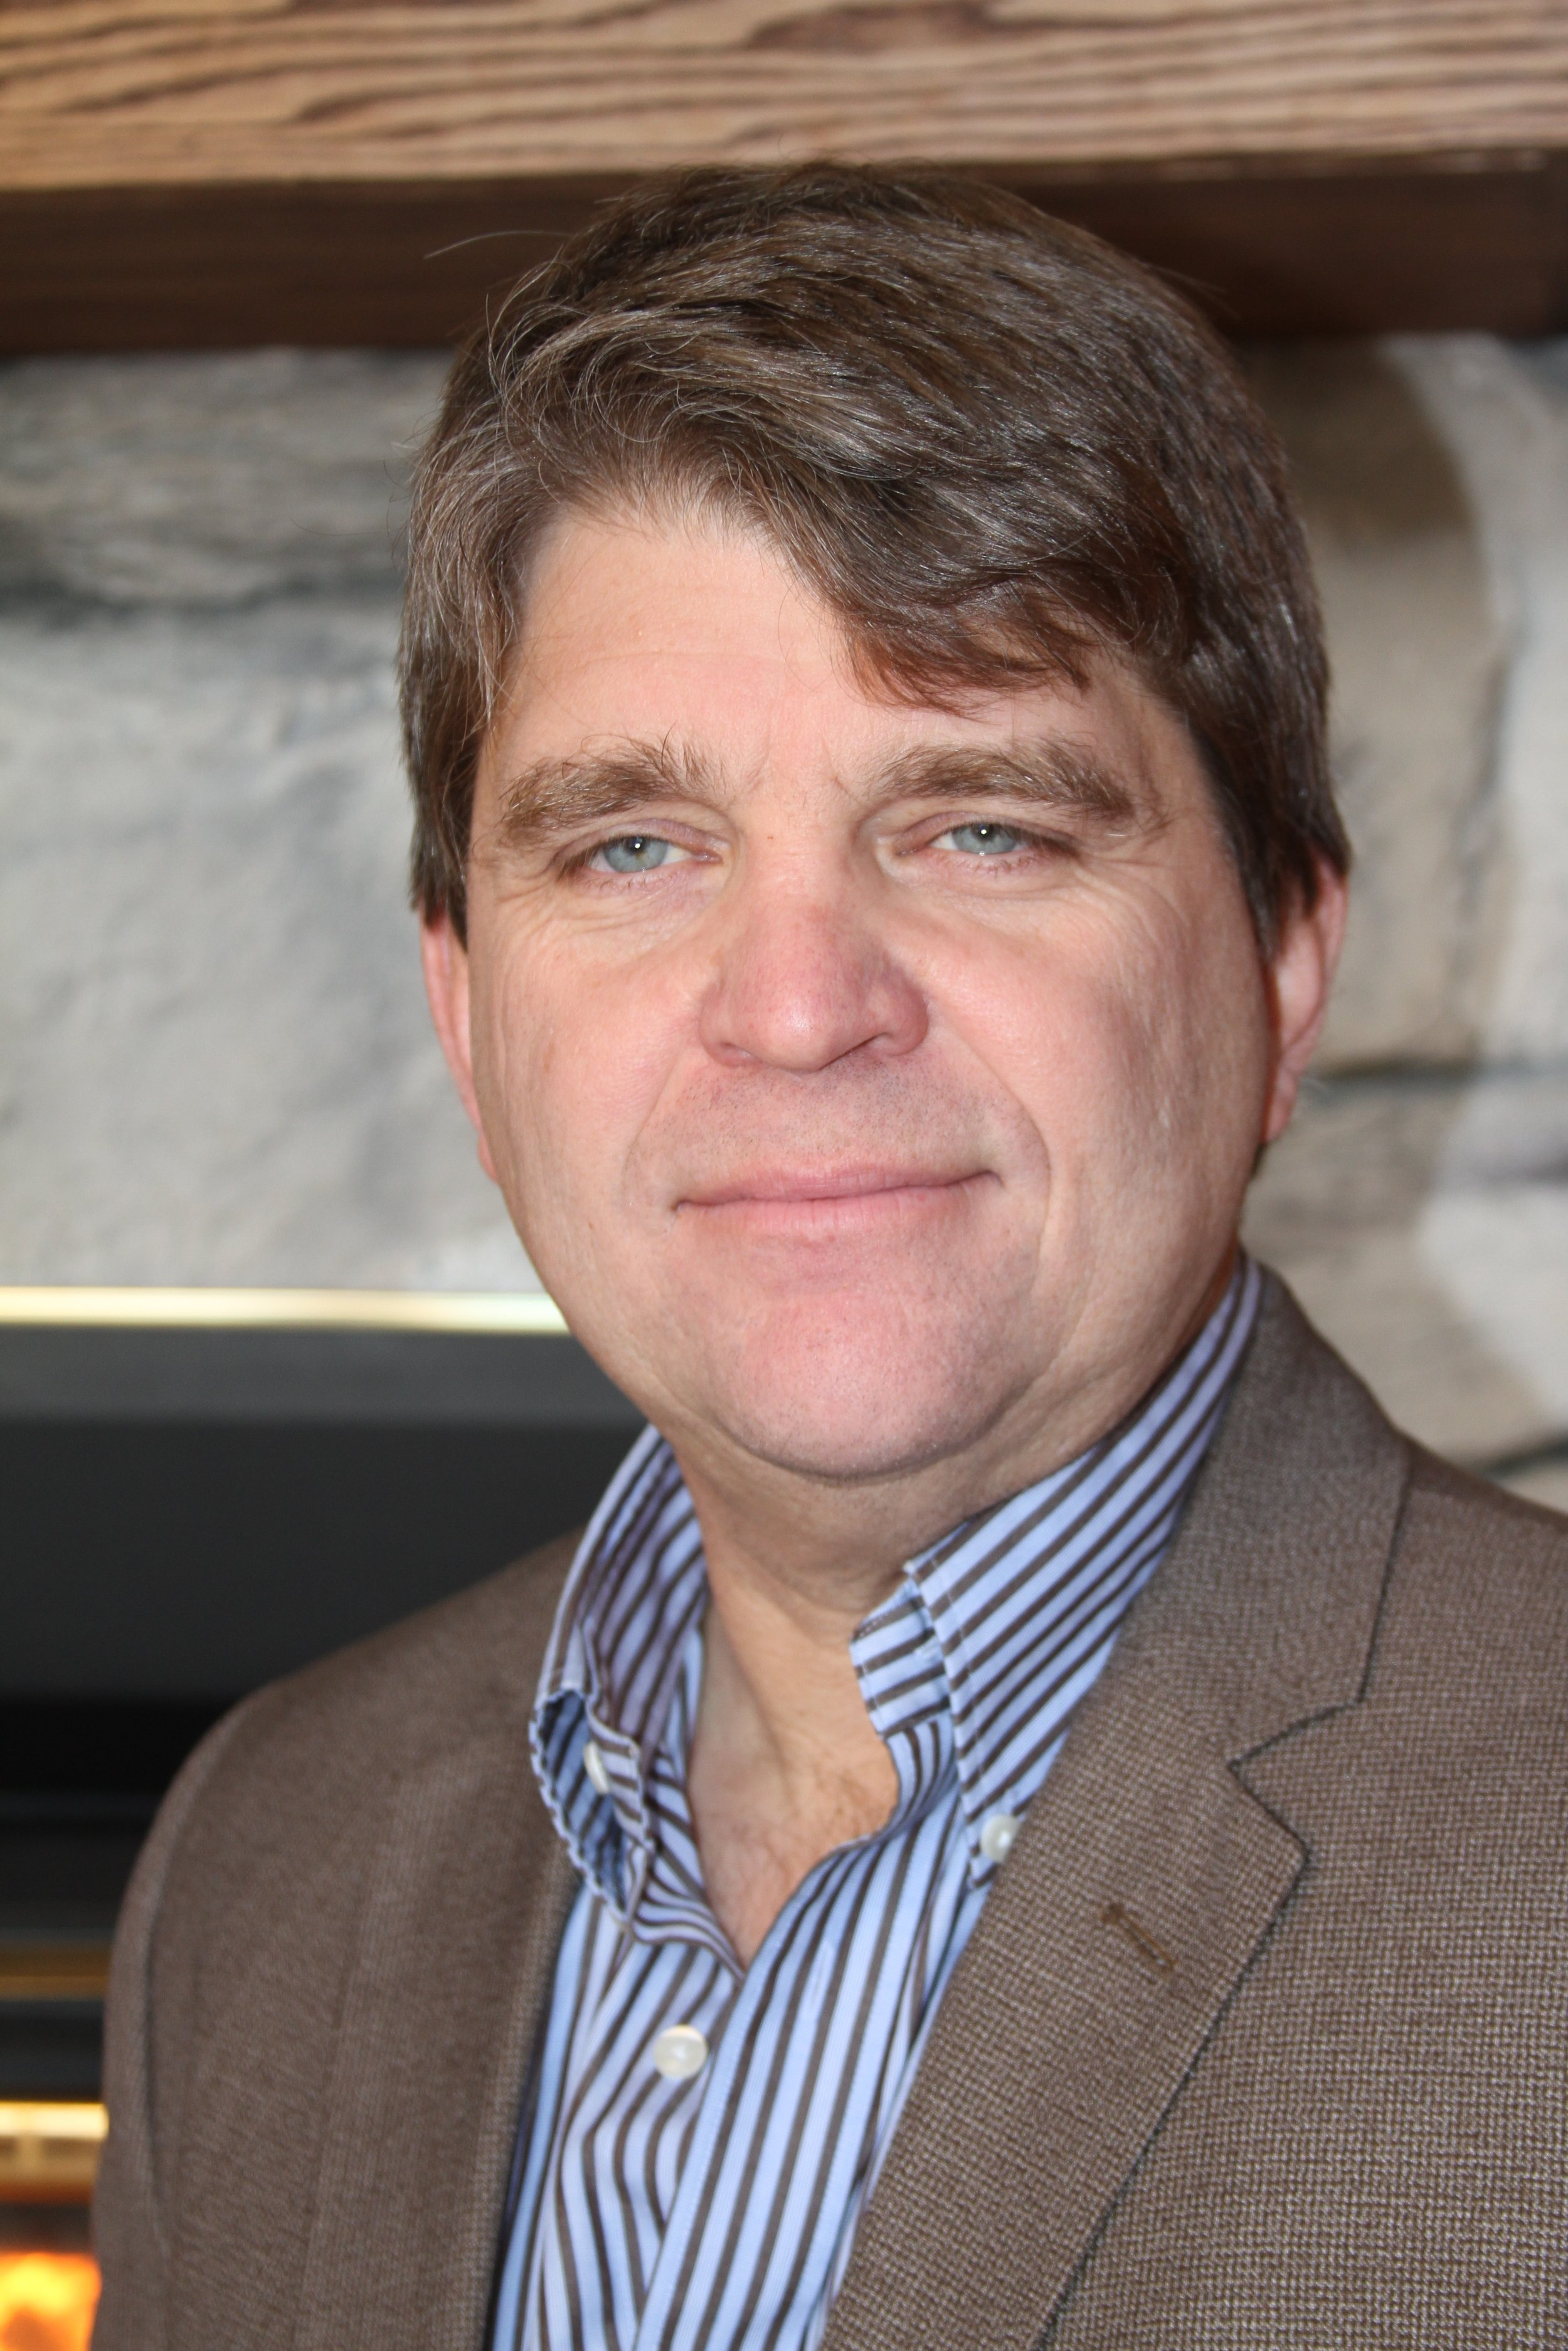 Dr. John Cullen - President-Elect, American Academy of Family Physicians